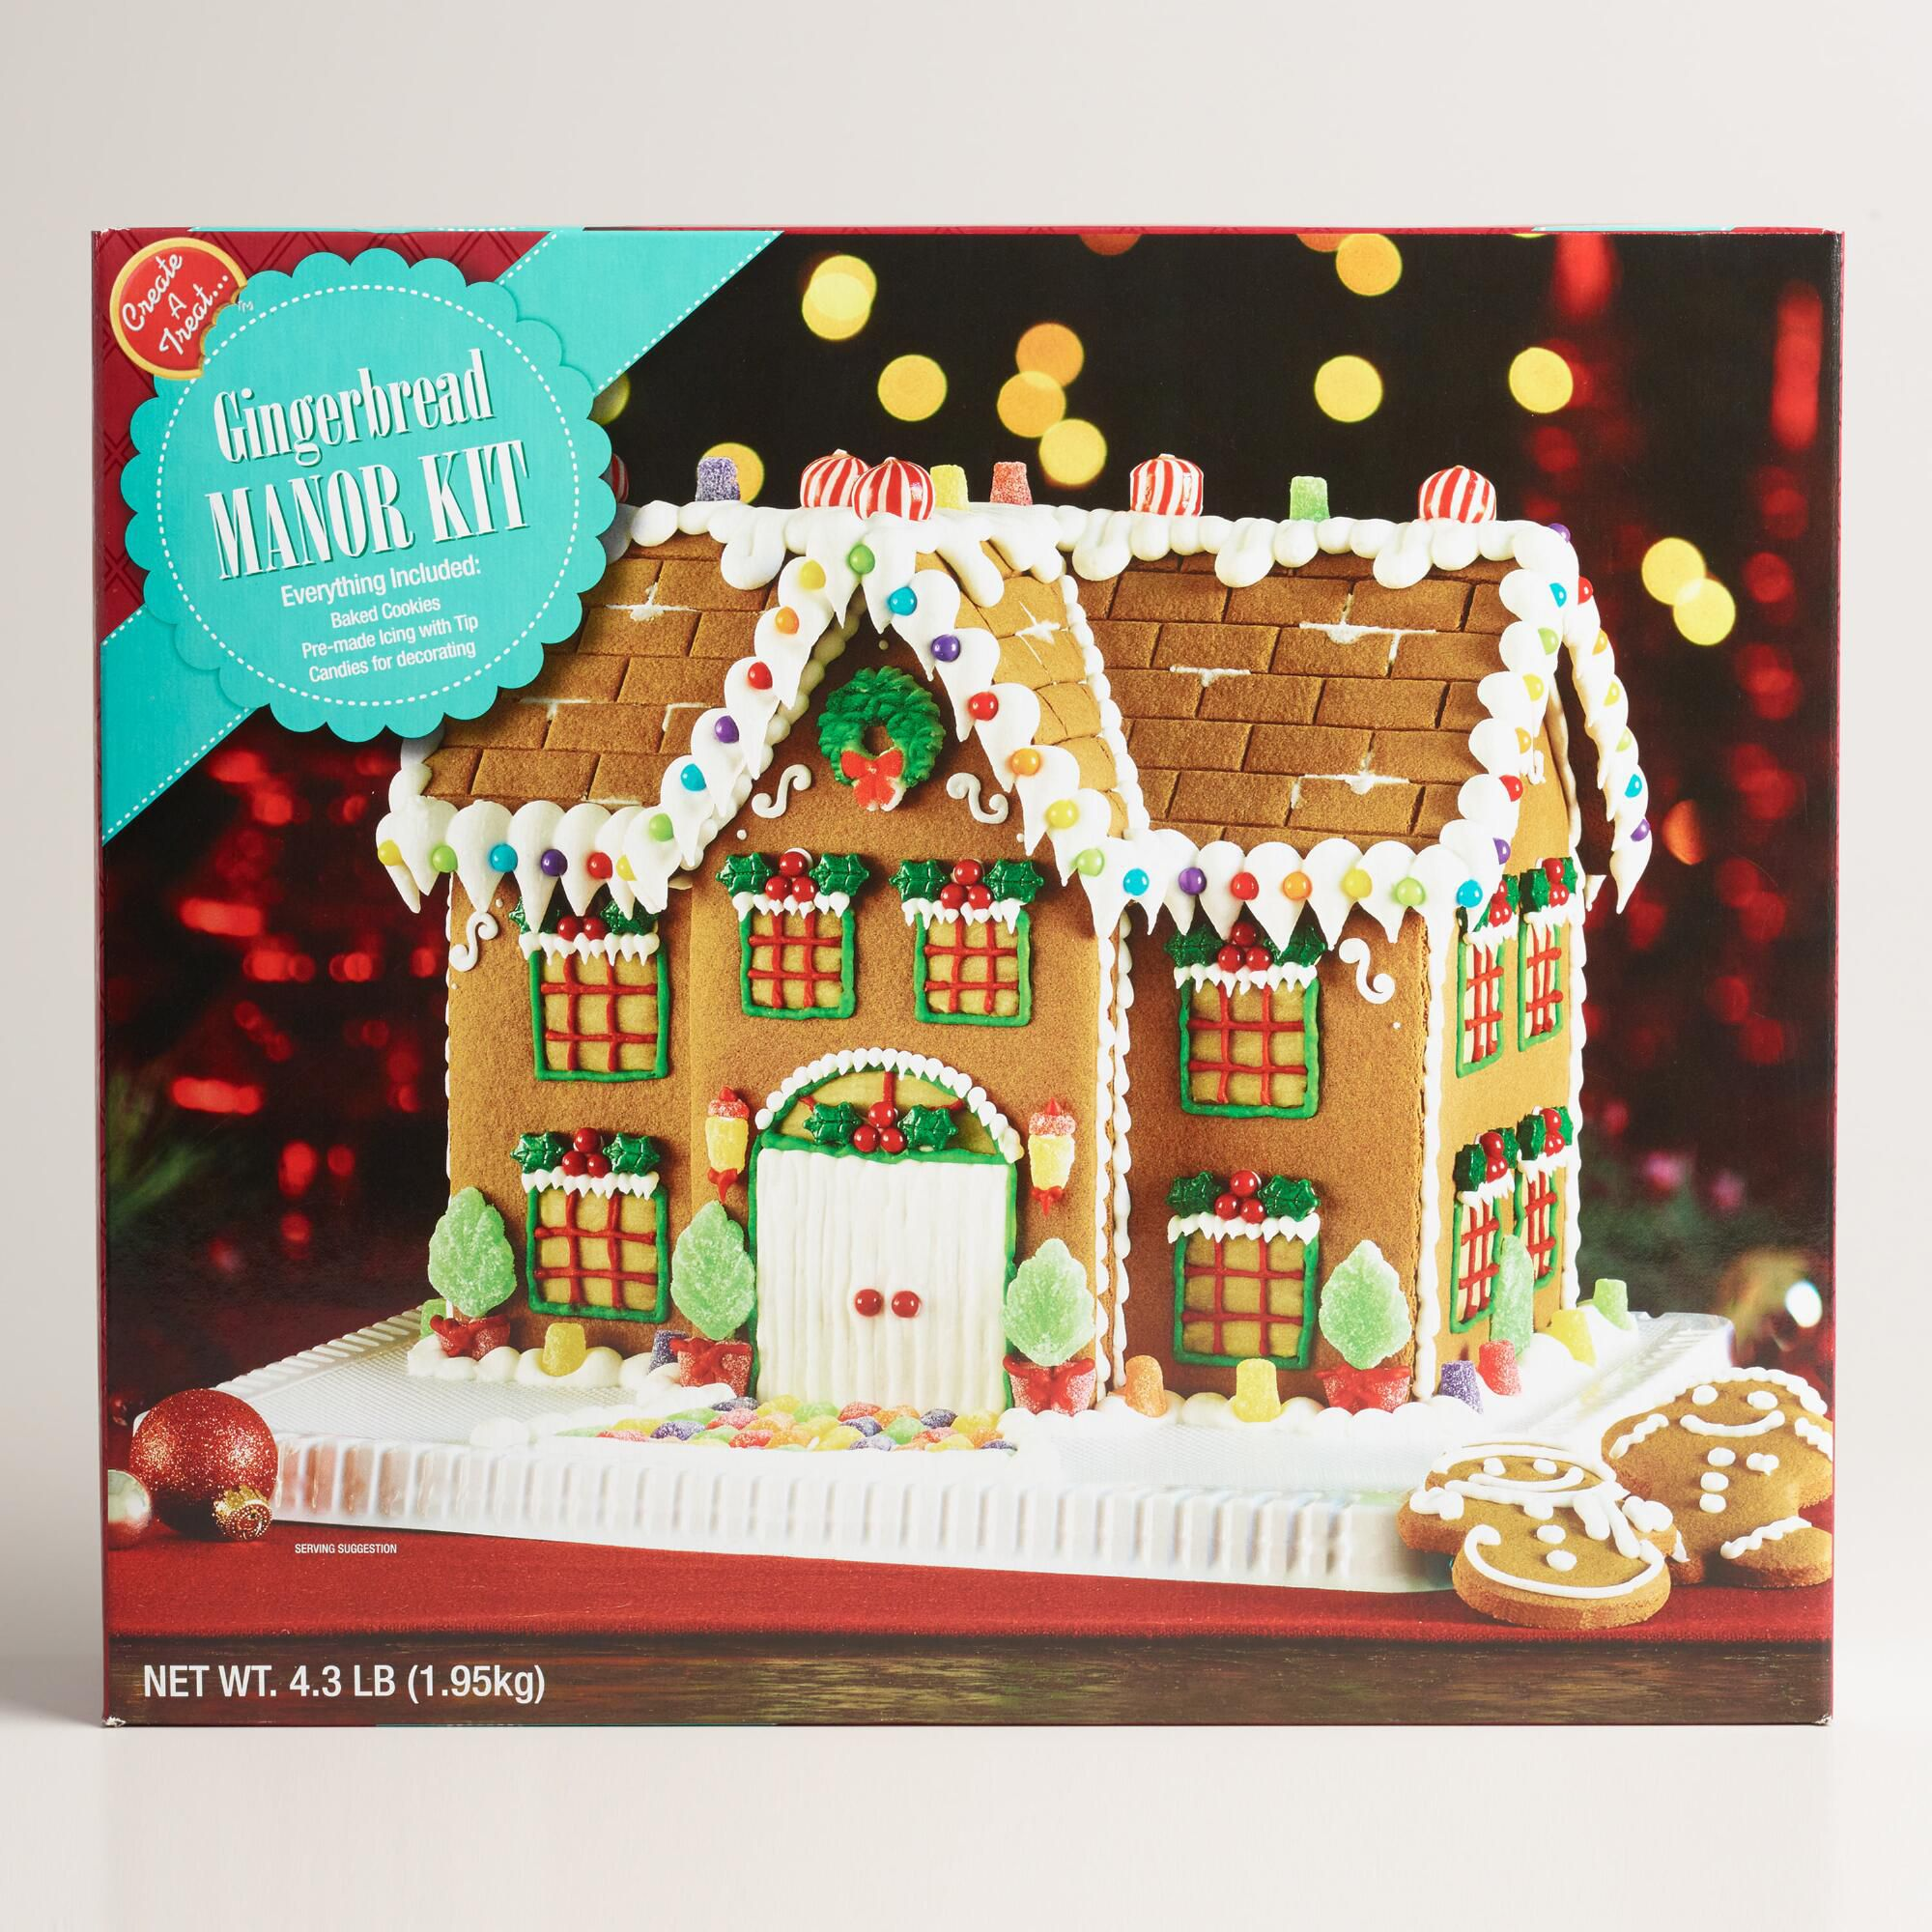 The 9 Best Gingerbread Kits for 2019